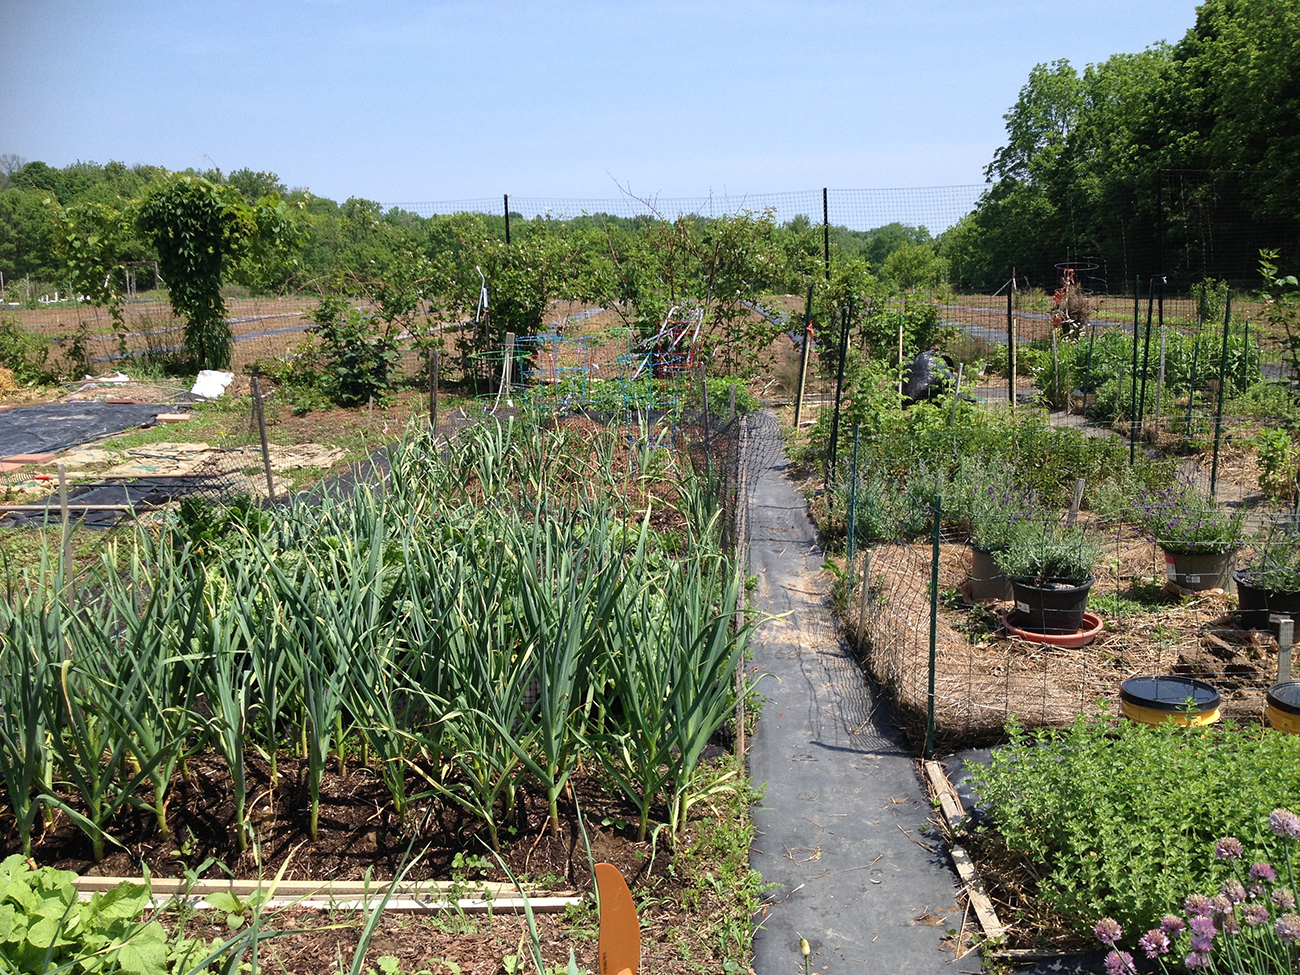 "Programs at the nature preserve include a community garden where people can rent 5x20 foot plots to grow their own produce. There's also a plant rescue program where volunteers collect thousands of unwanted plants from nurseries and grow and harvest them at the property to donate. ""Last year we rescued 5,000 plants and in 2018 we donated about 6,000 pounds of produce, about 99 percent of which goes to La Soupe,"" Vanessa Hannah says. / Image: Vanessa Hannah // Published: 2.25.20"